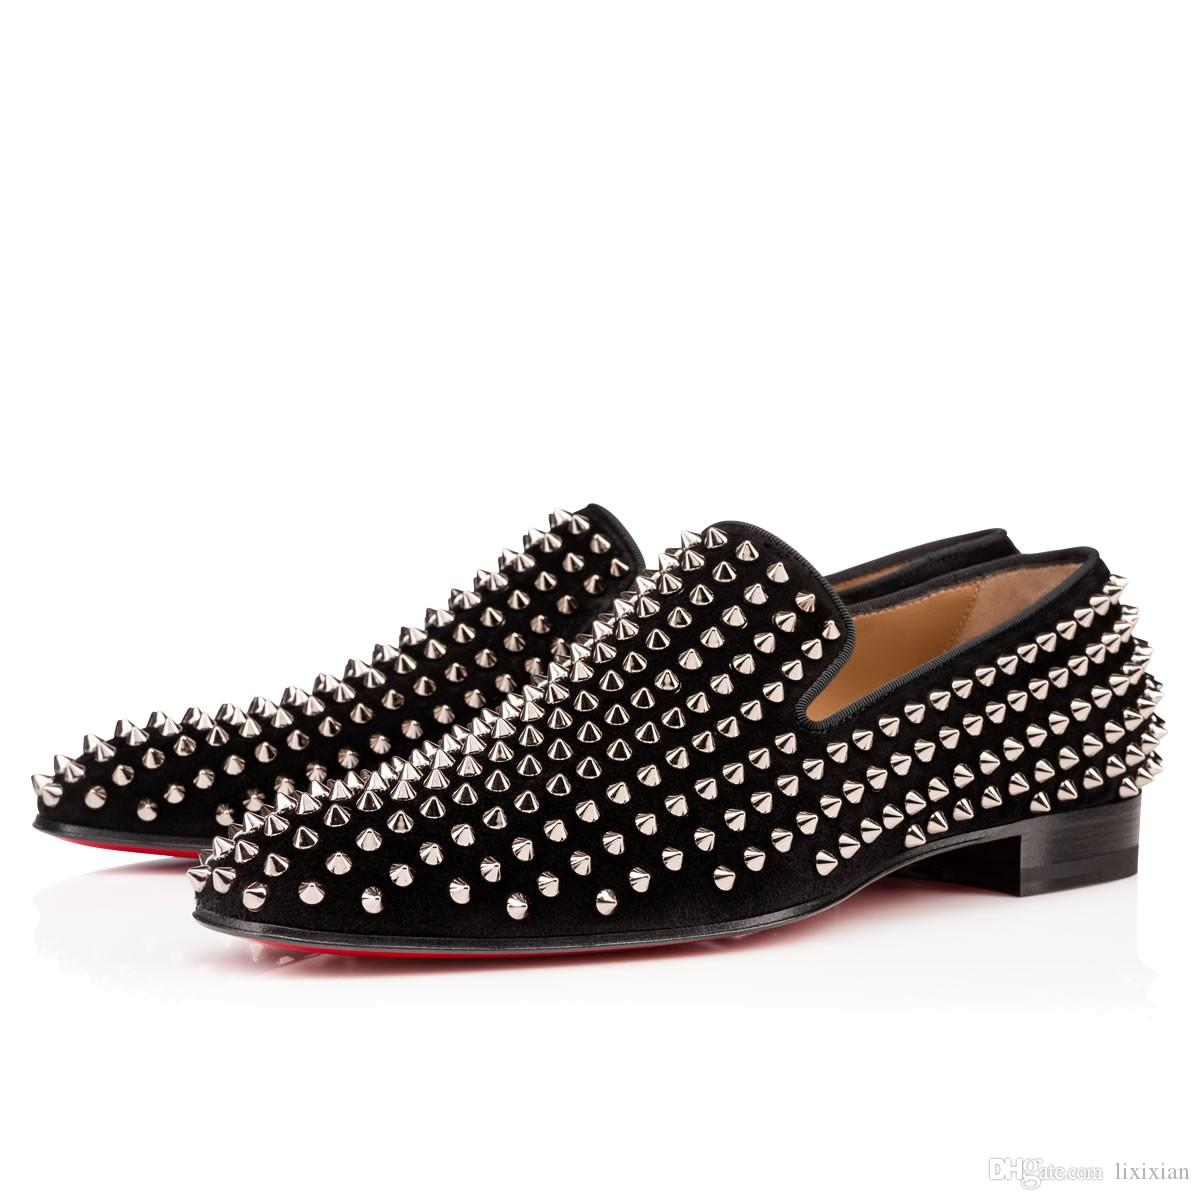 quality design 5efaa 08ebc Christian Louboutin PX12 fashion sneakers, loafers, women bags ,Red heels